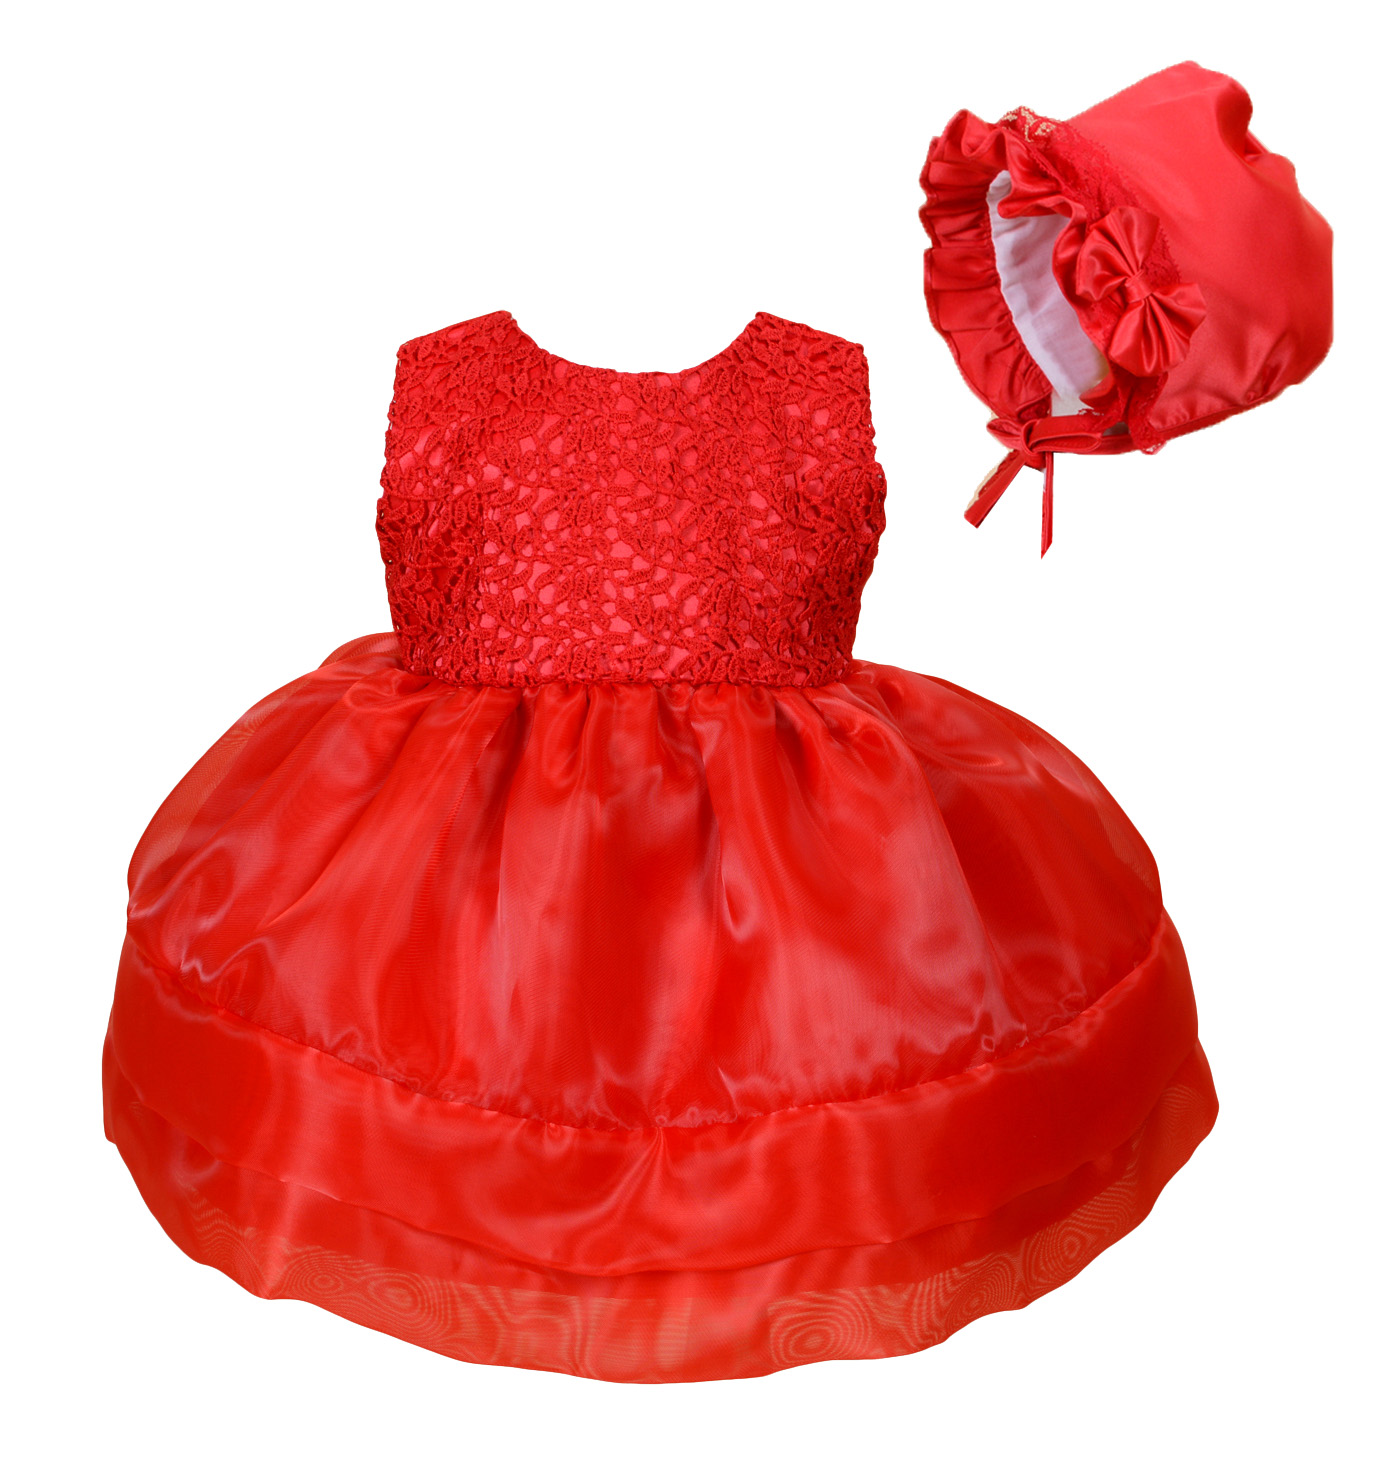 a55b2c133 Baby Girls Party Dress and Bonnet Pink Red 0 3 6 12 18 24 Months ...